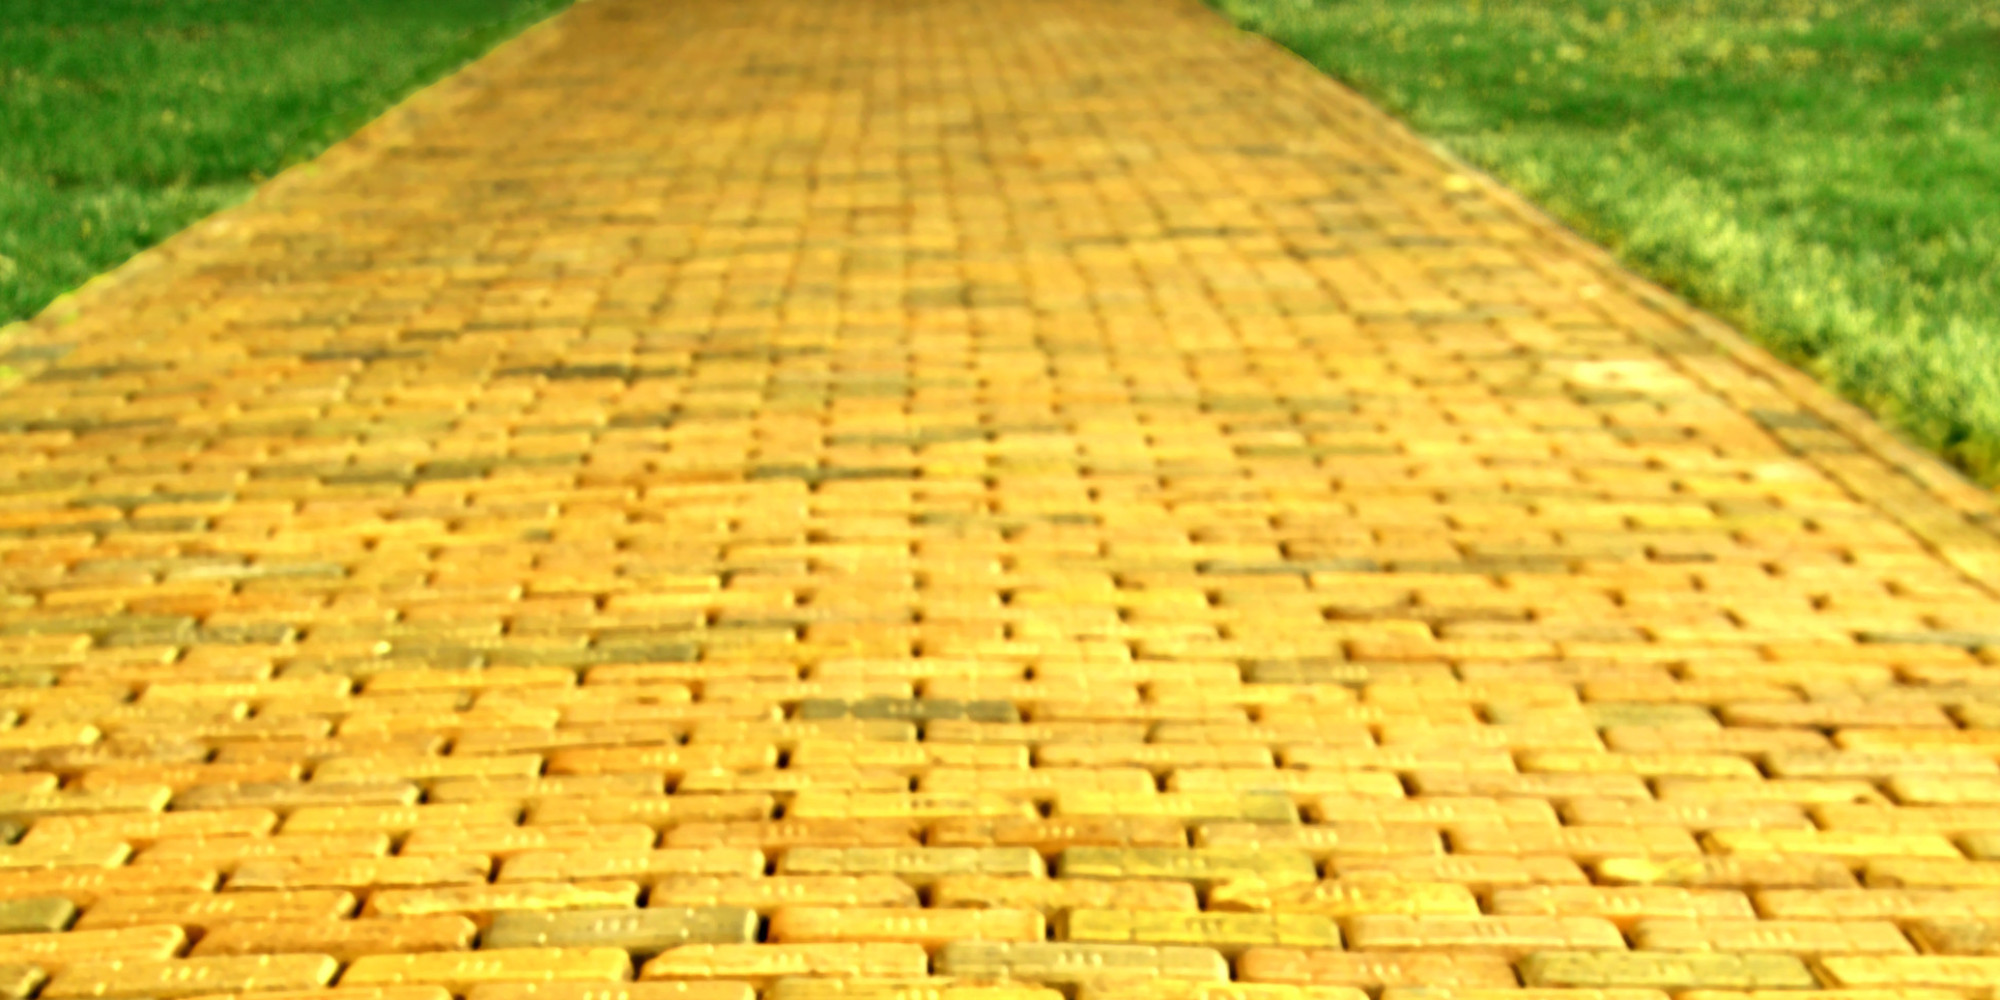 Oz clipart brick path. Intricate yellow road wallpapers